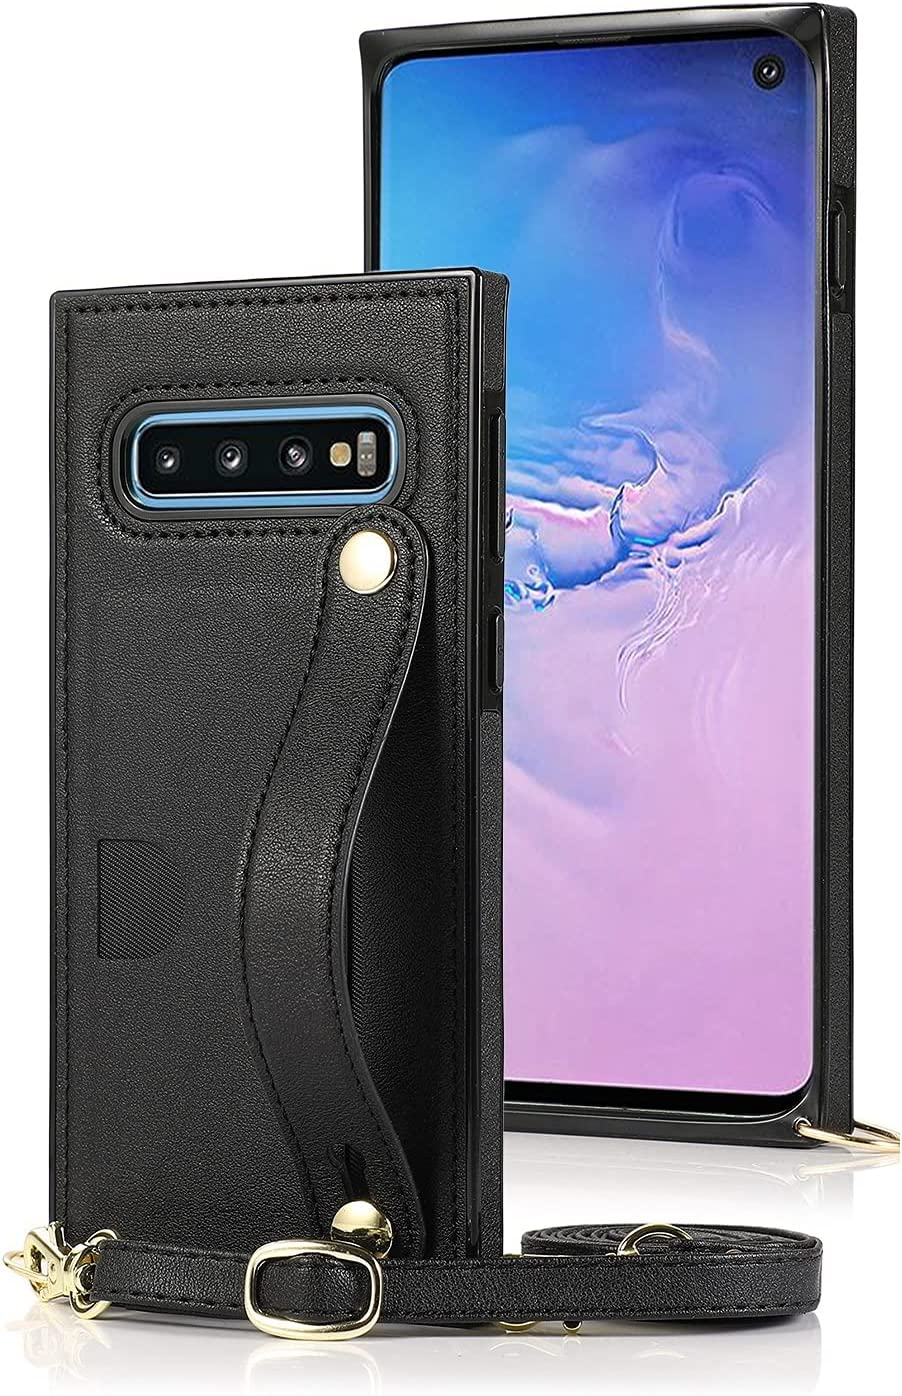 Case for Samsung Galaxy S10E, Leather Case with Credit Card Slot Non-Slip Buckle Holder/Crossbody Long Lanyard, Shockproof Leather TPU Case Cover for Samsung Galaxy S10E (Color : Black)